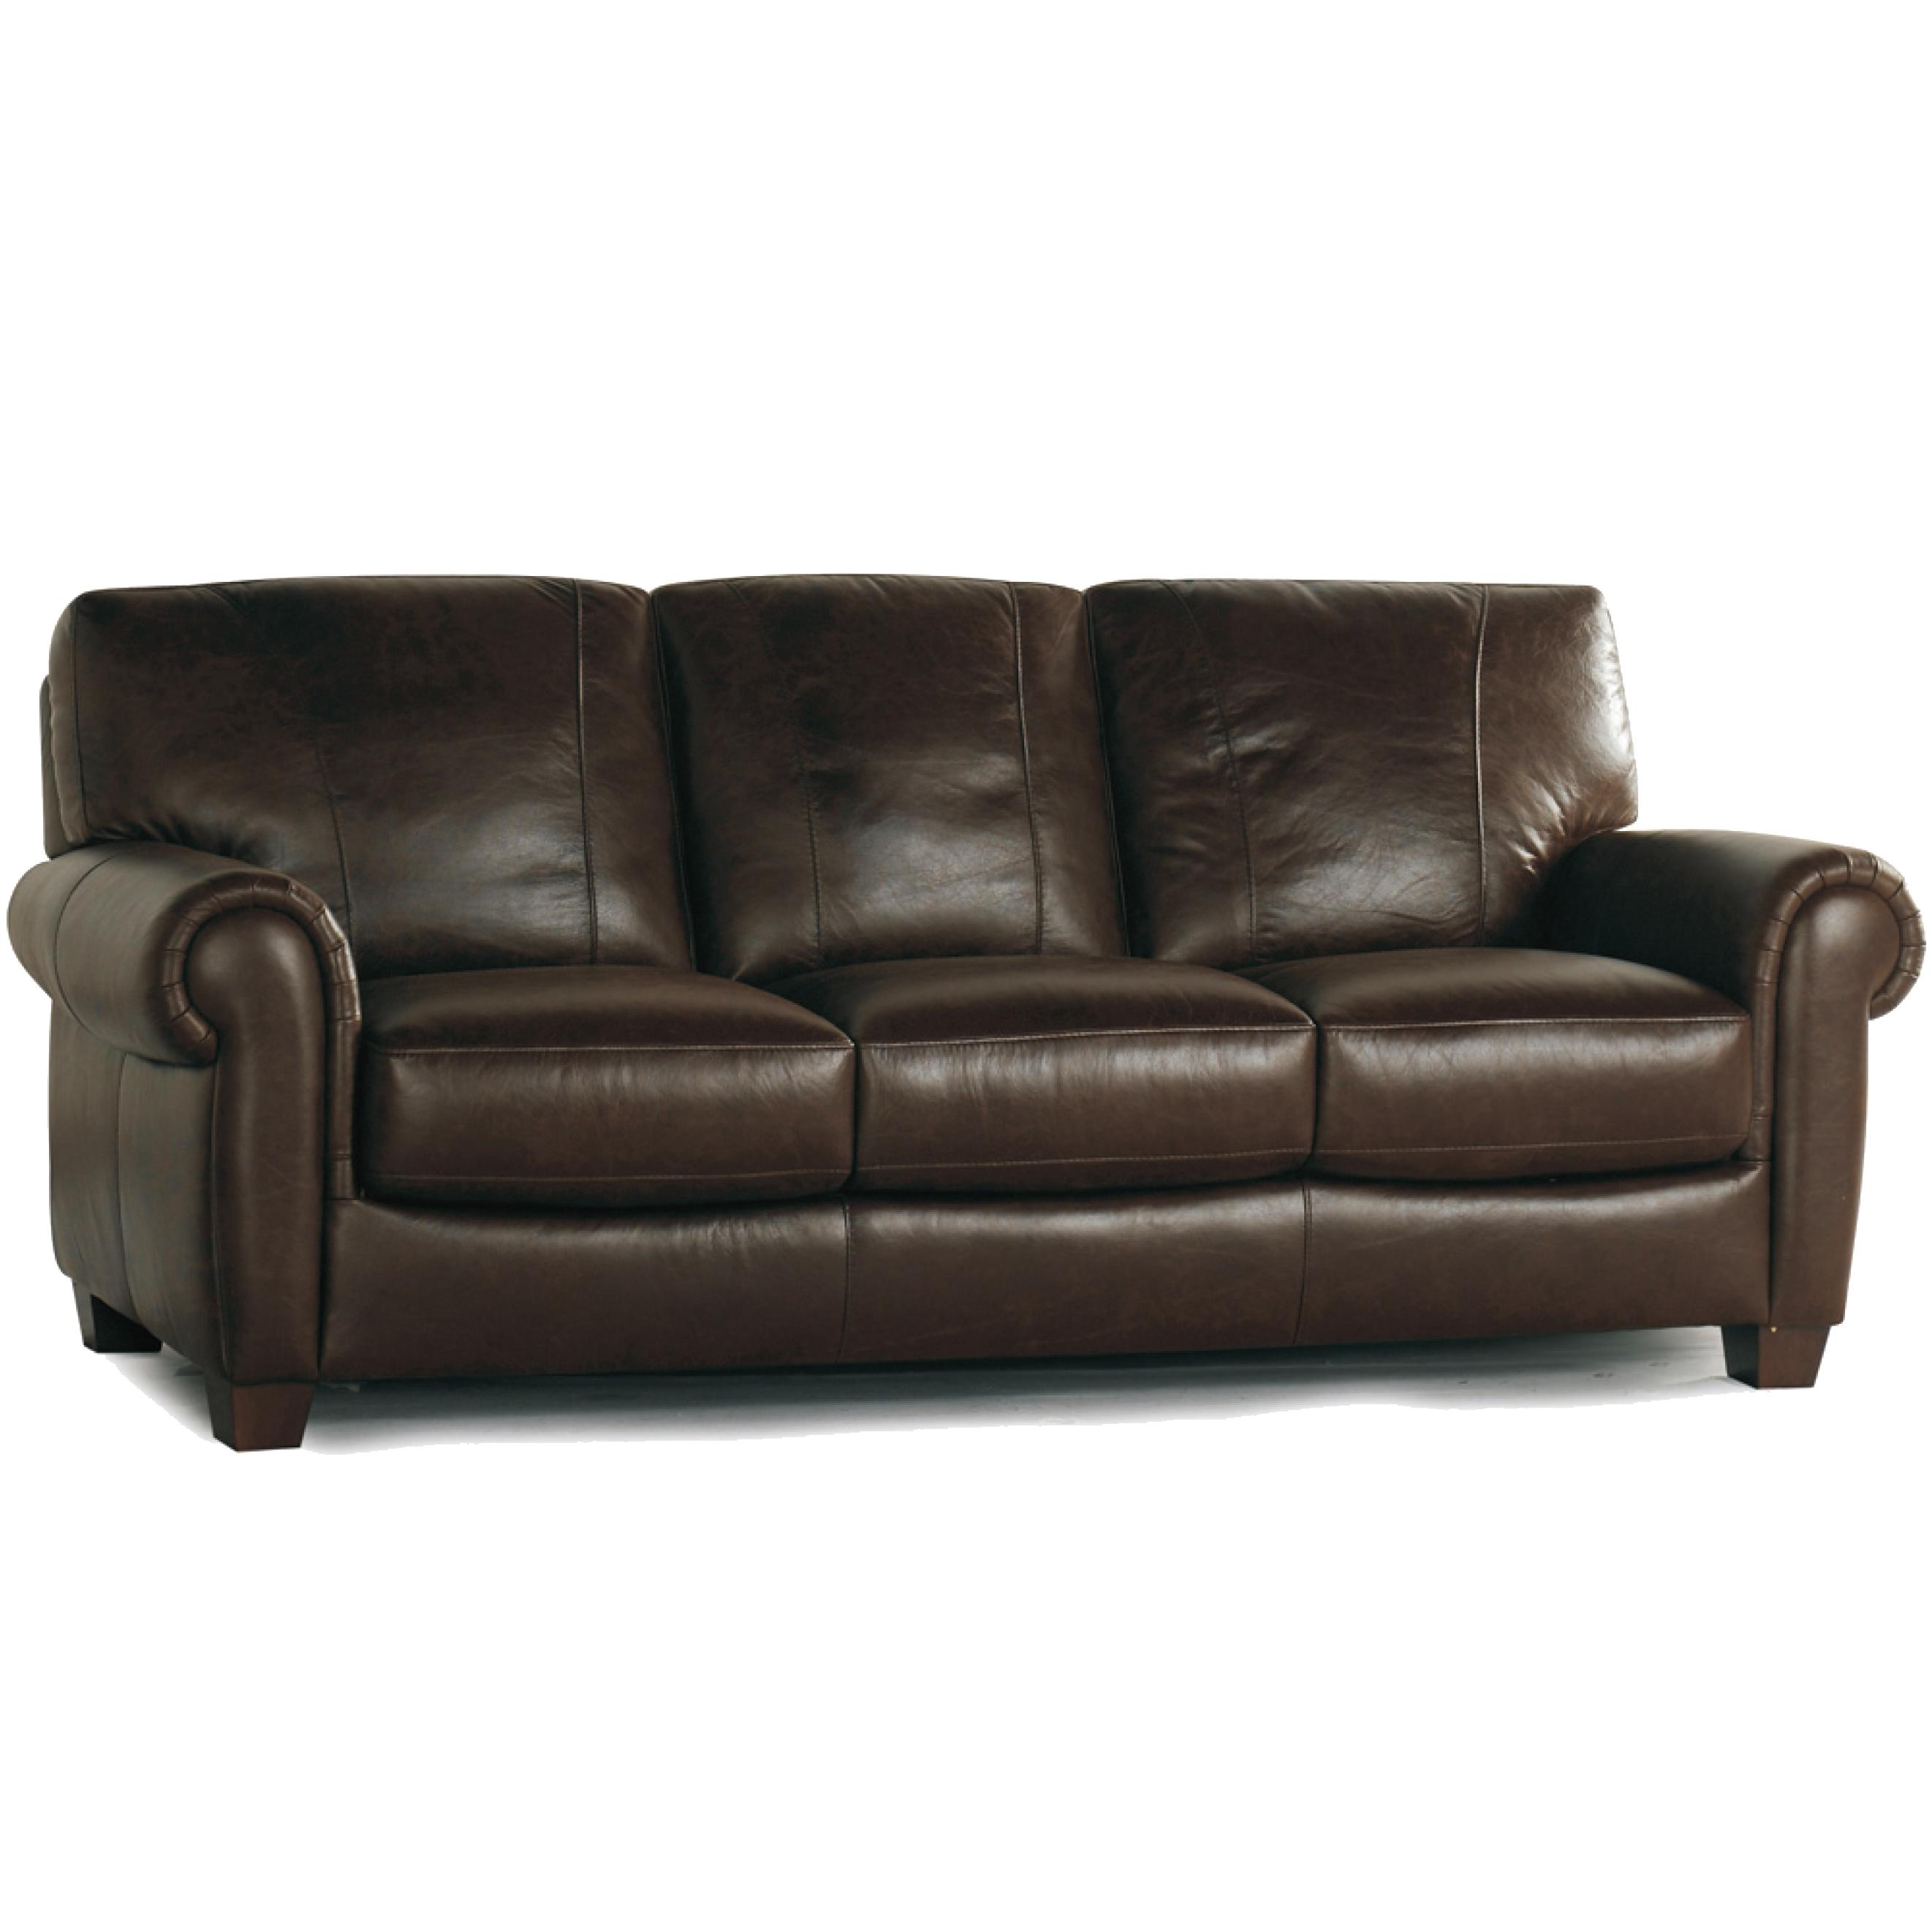 3516 Traditional Sofa by Violino at Furniture Superstore - Rochester, MN